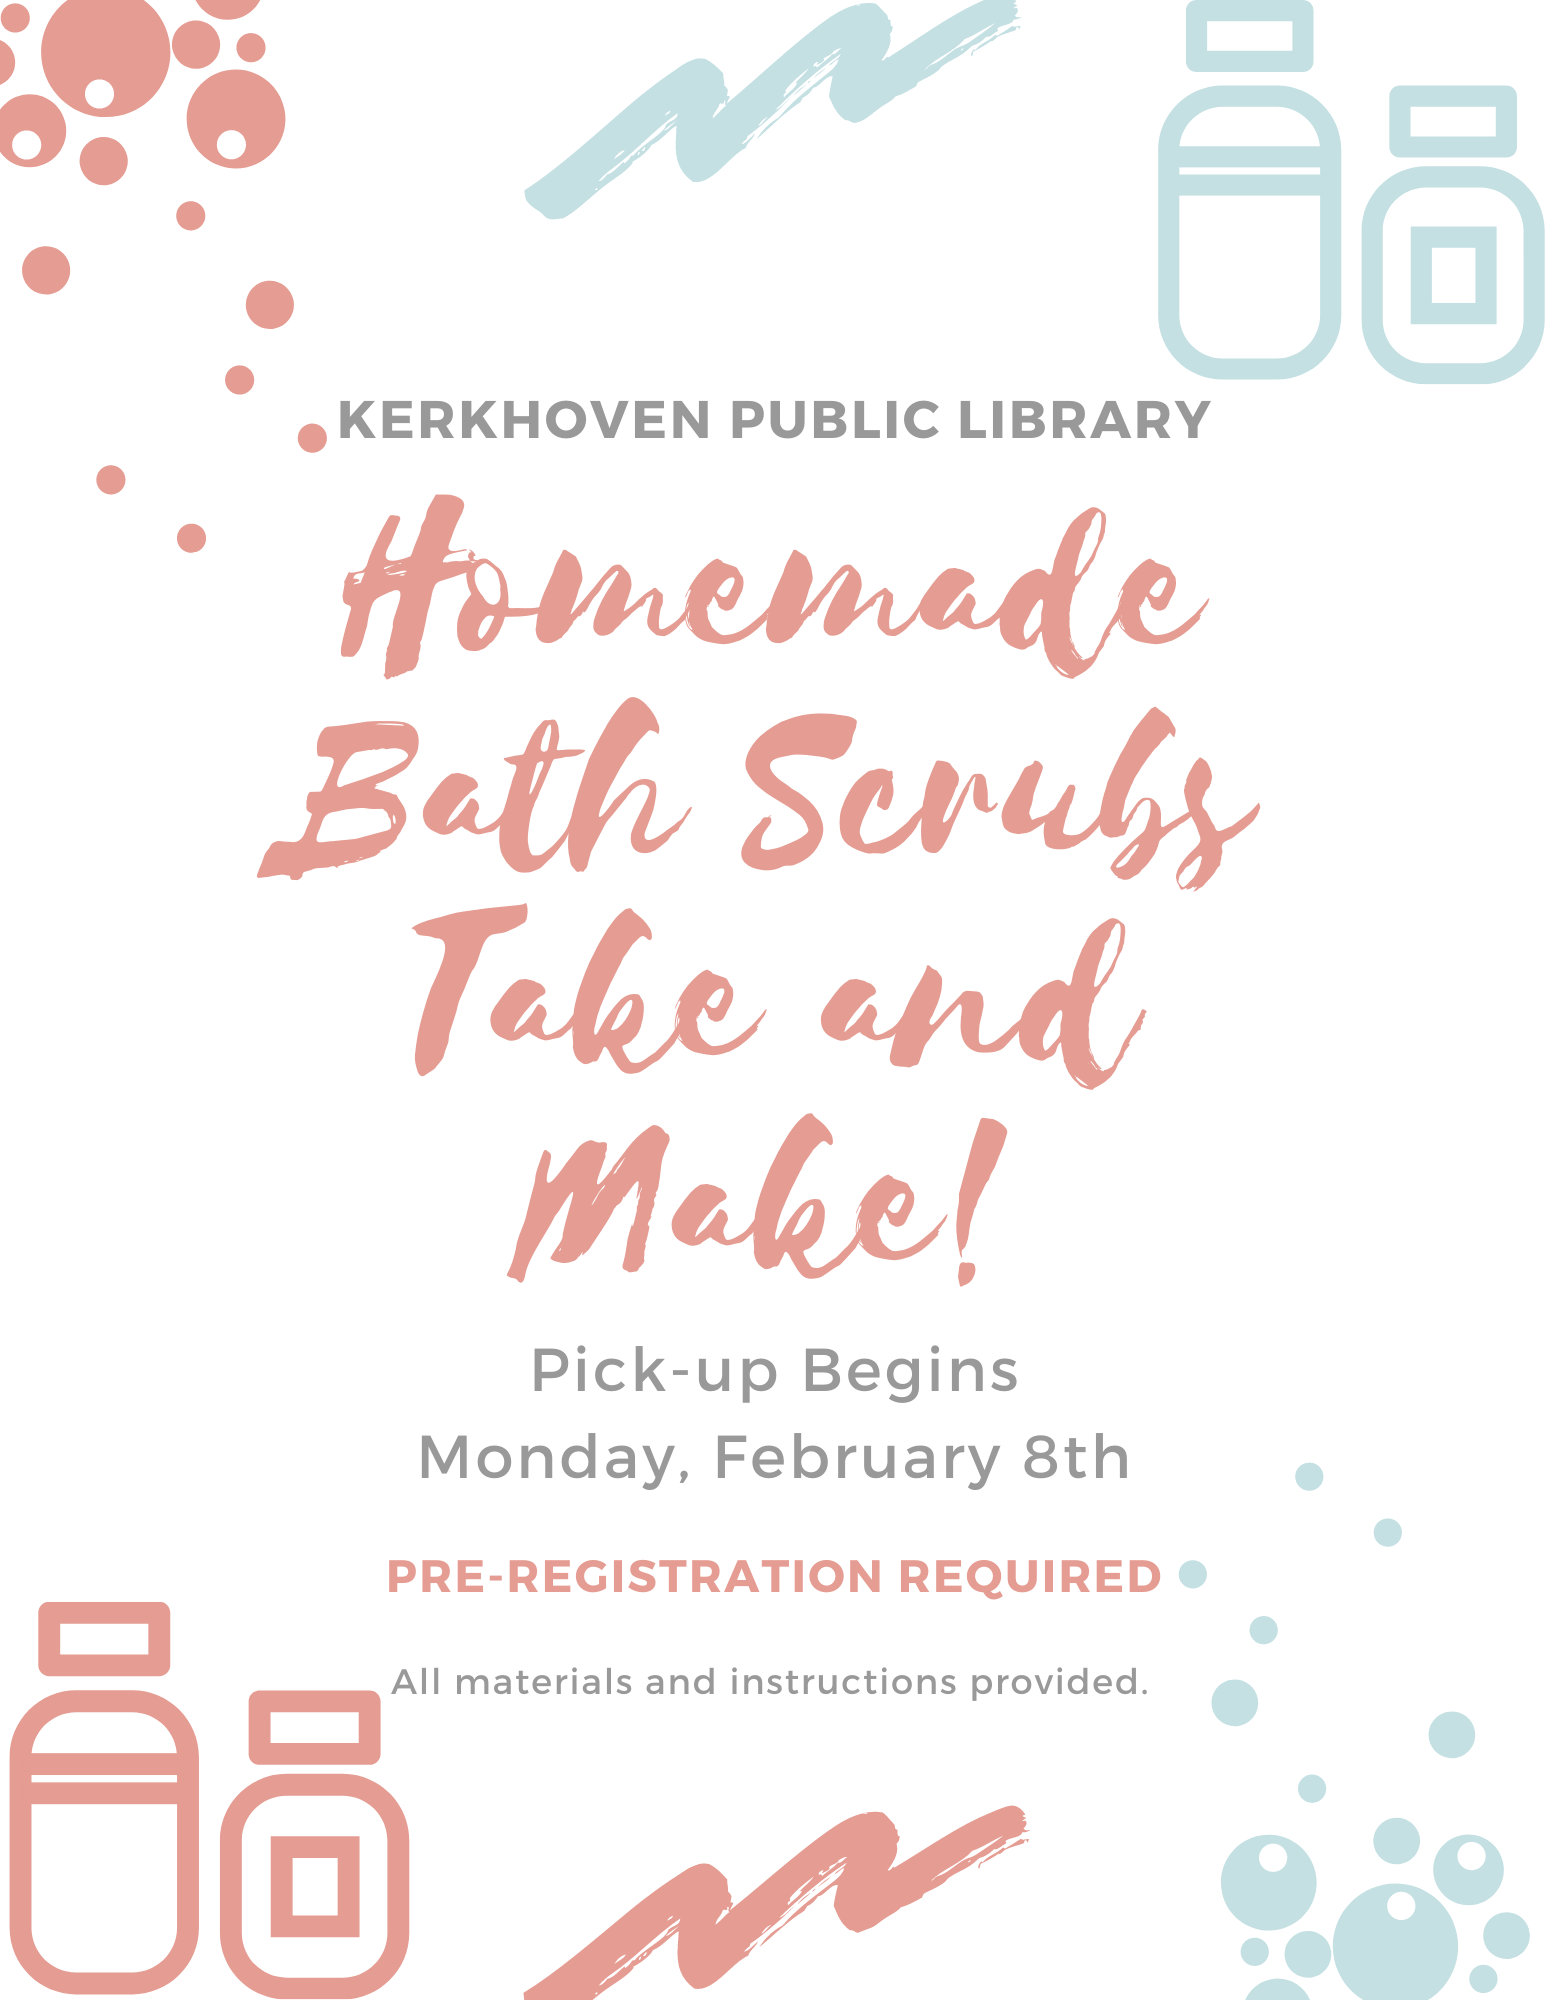 We are having a Homemade Bath Scrubs Take and Make class. Pick-up begins on Monday, February 8th. All materials and instructions included. Instructional video will also be posted on the Facebook page the morning on the 8th.